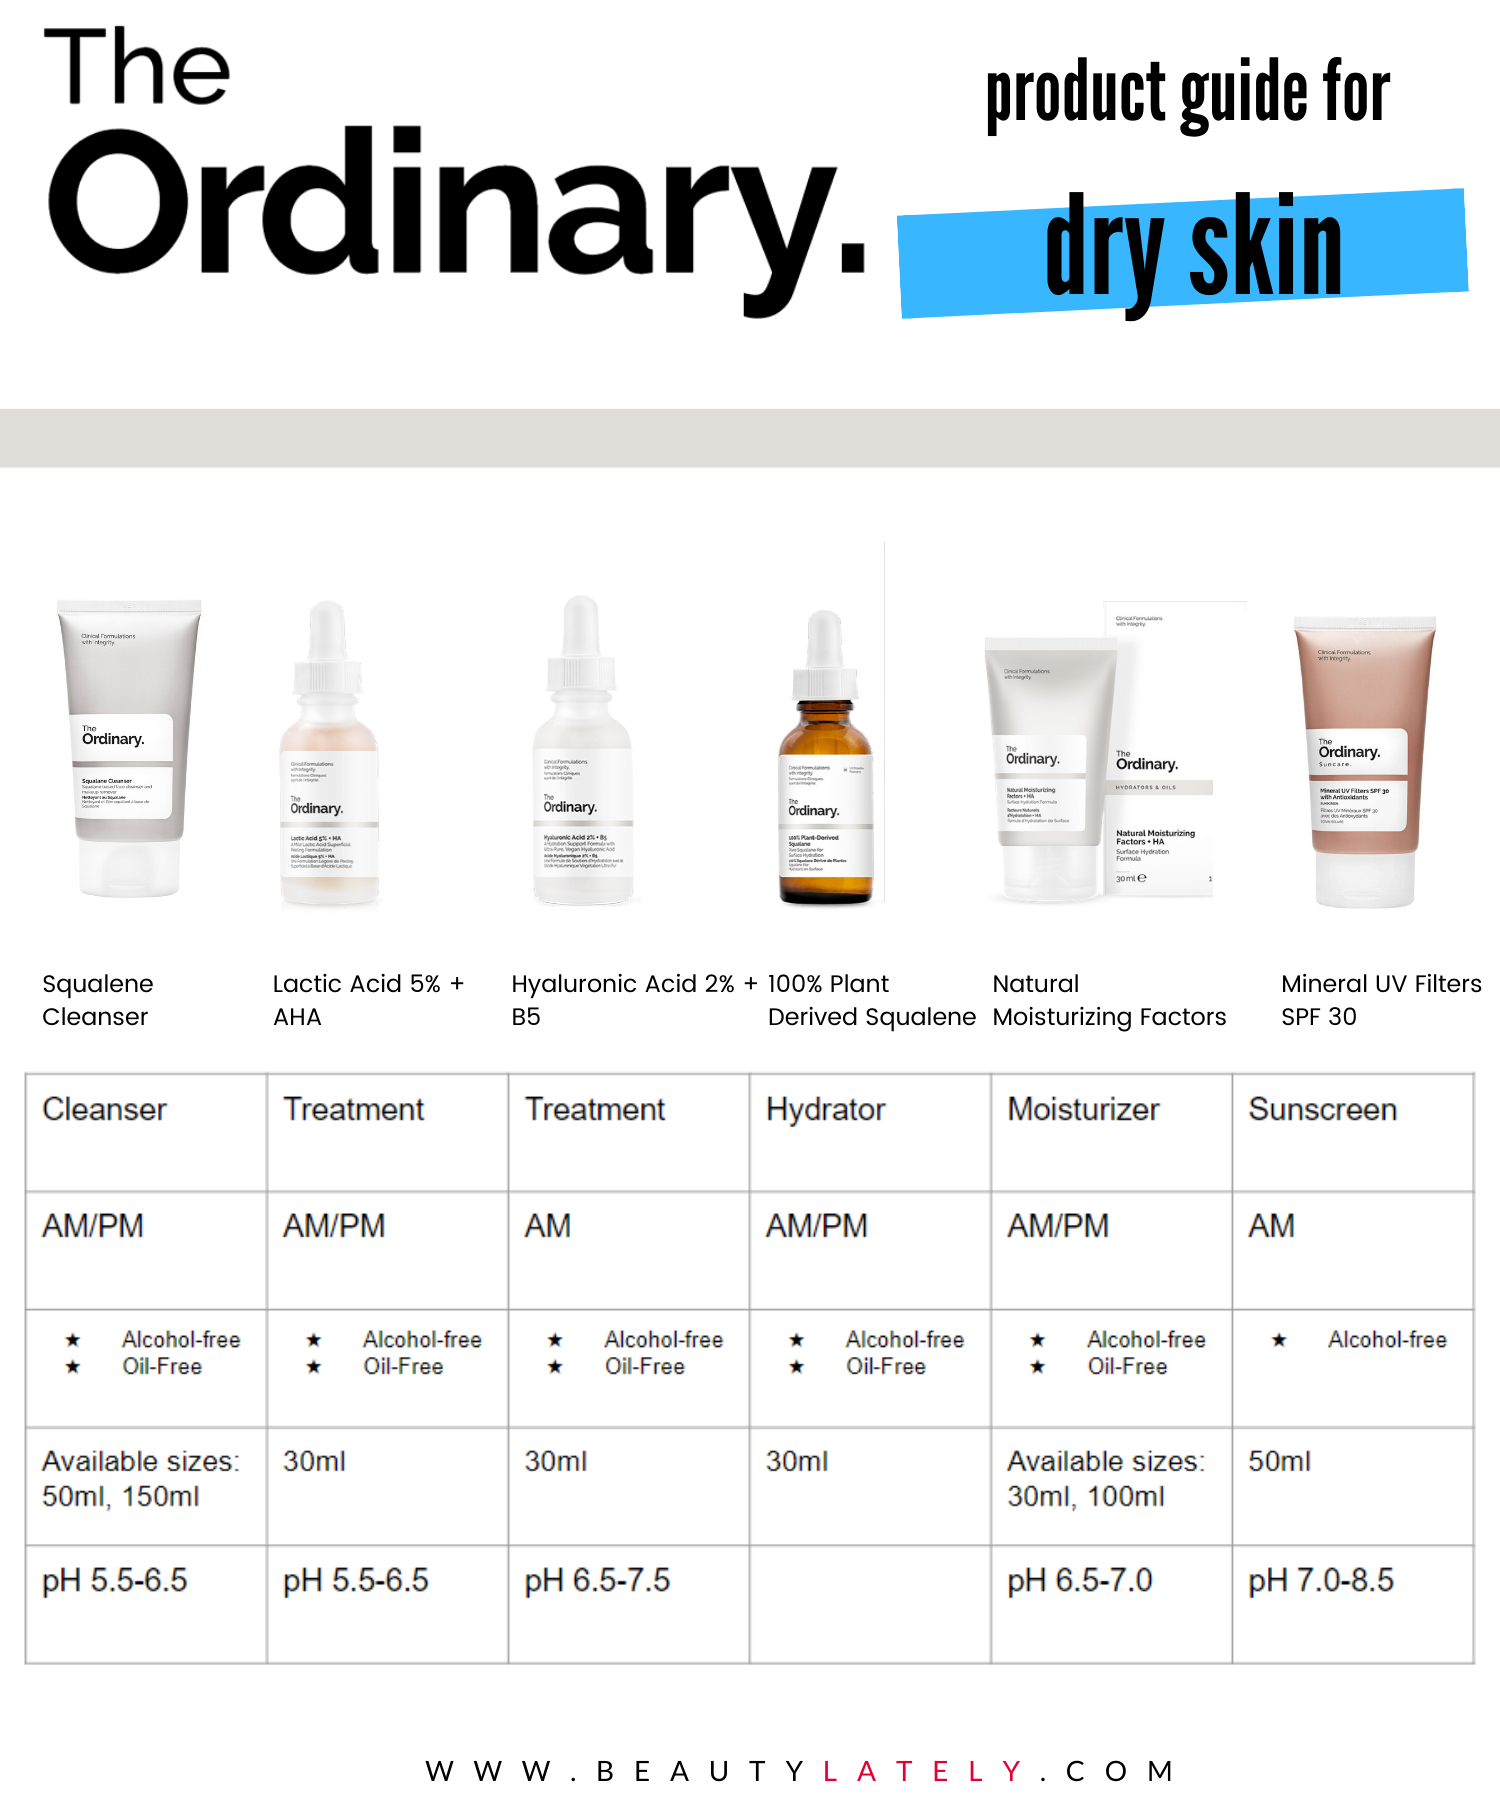 How To Pick The Best The Ordinary Products For Dry Skin Skin Acne Treatment Oily Skin Care Routine Oily Skin Care